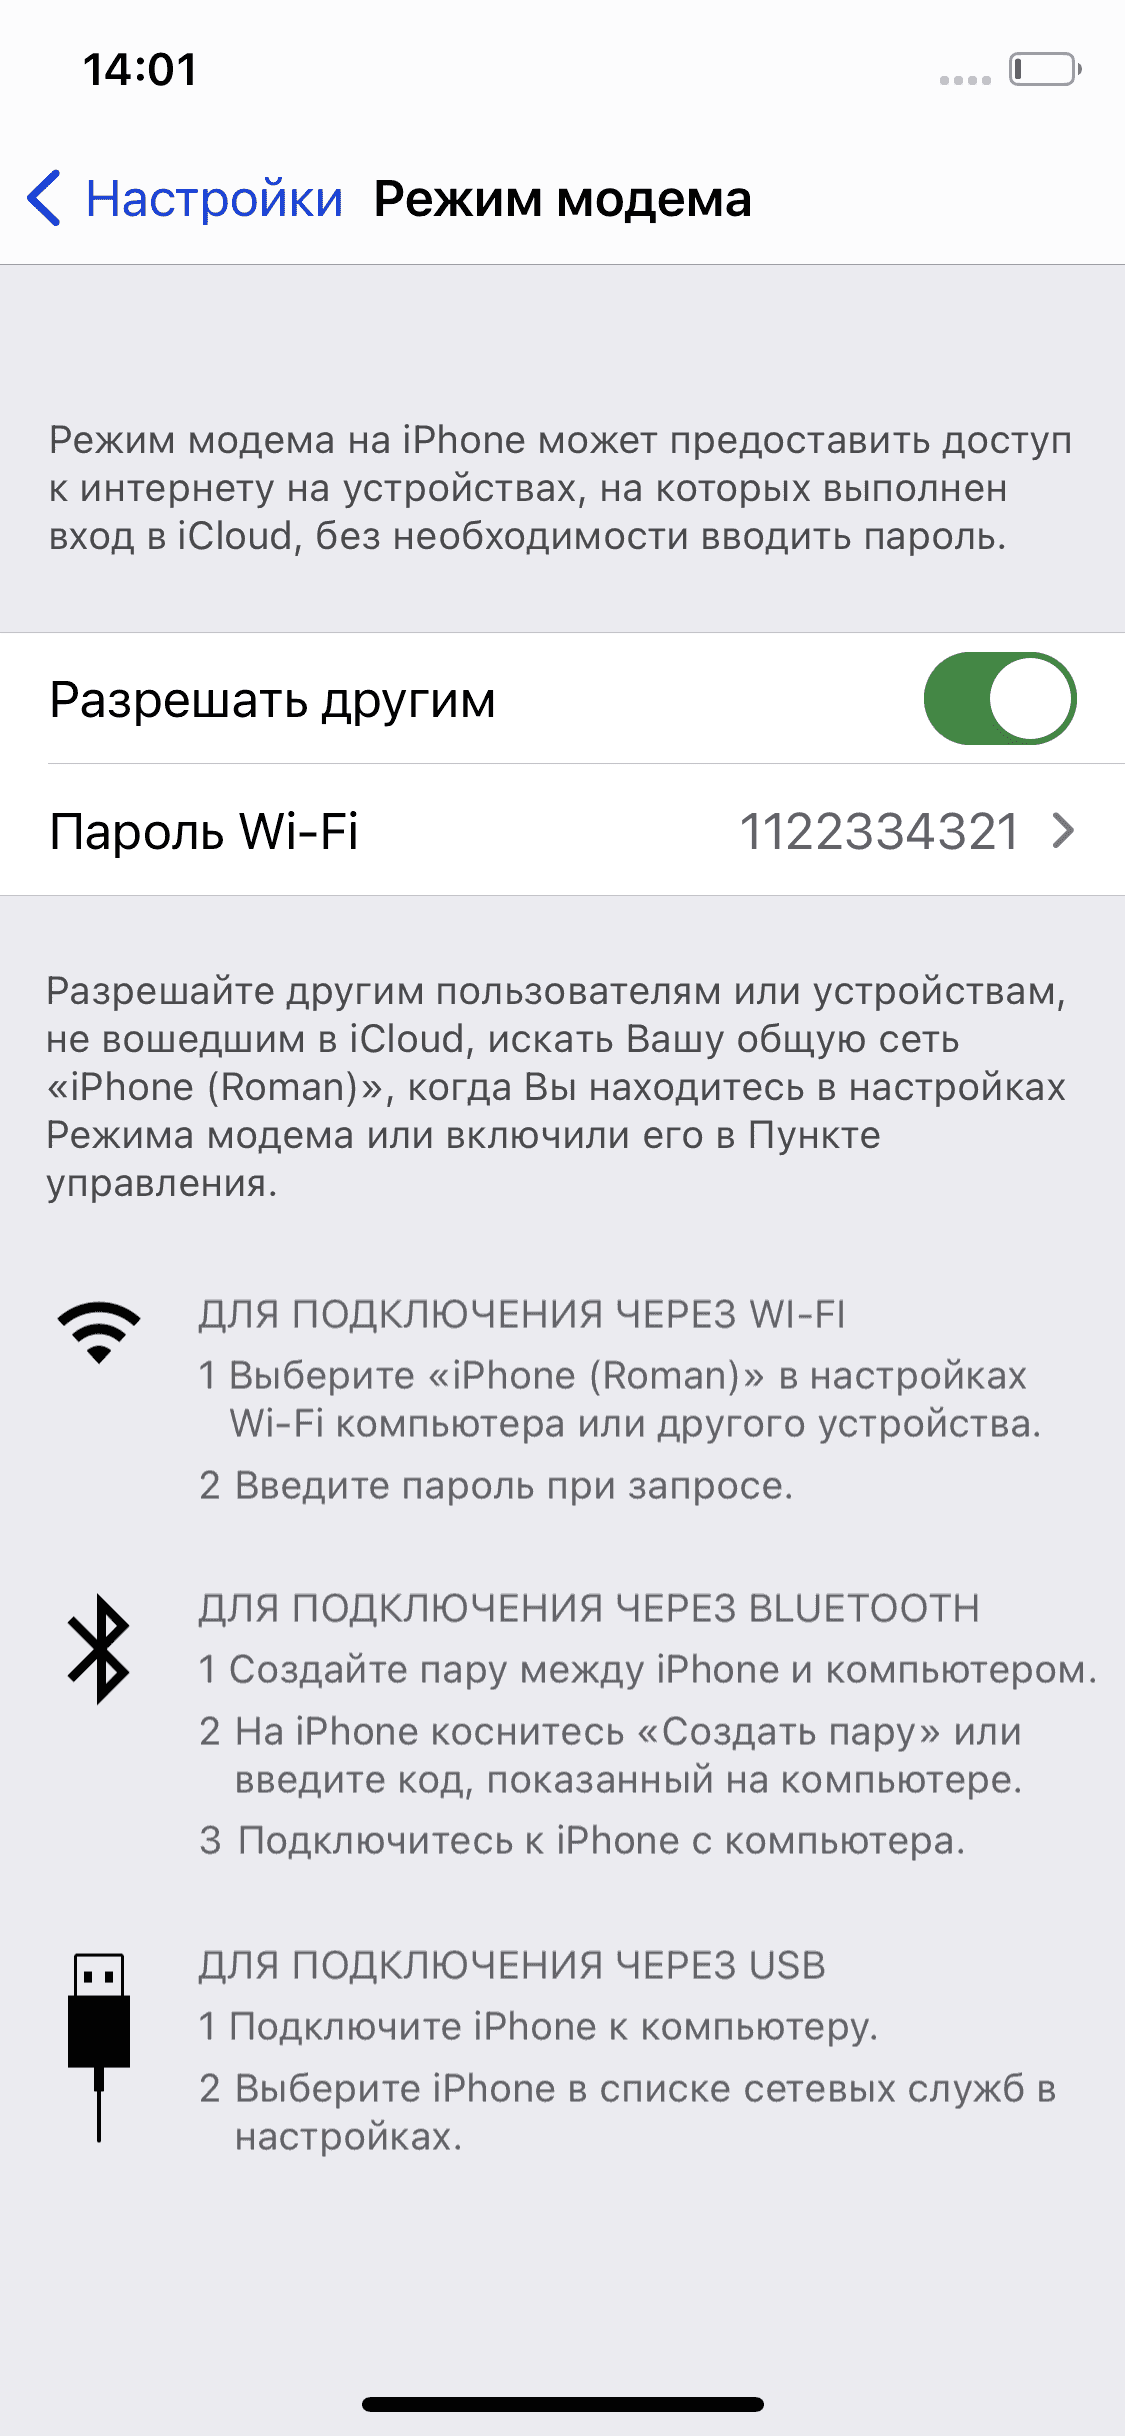 rezhim modema na iphone